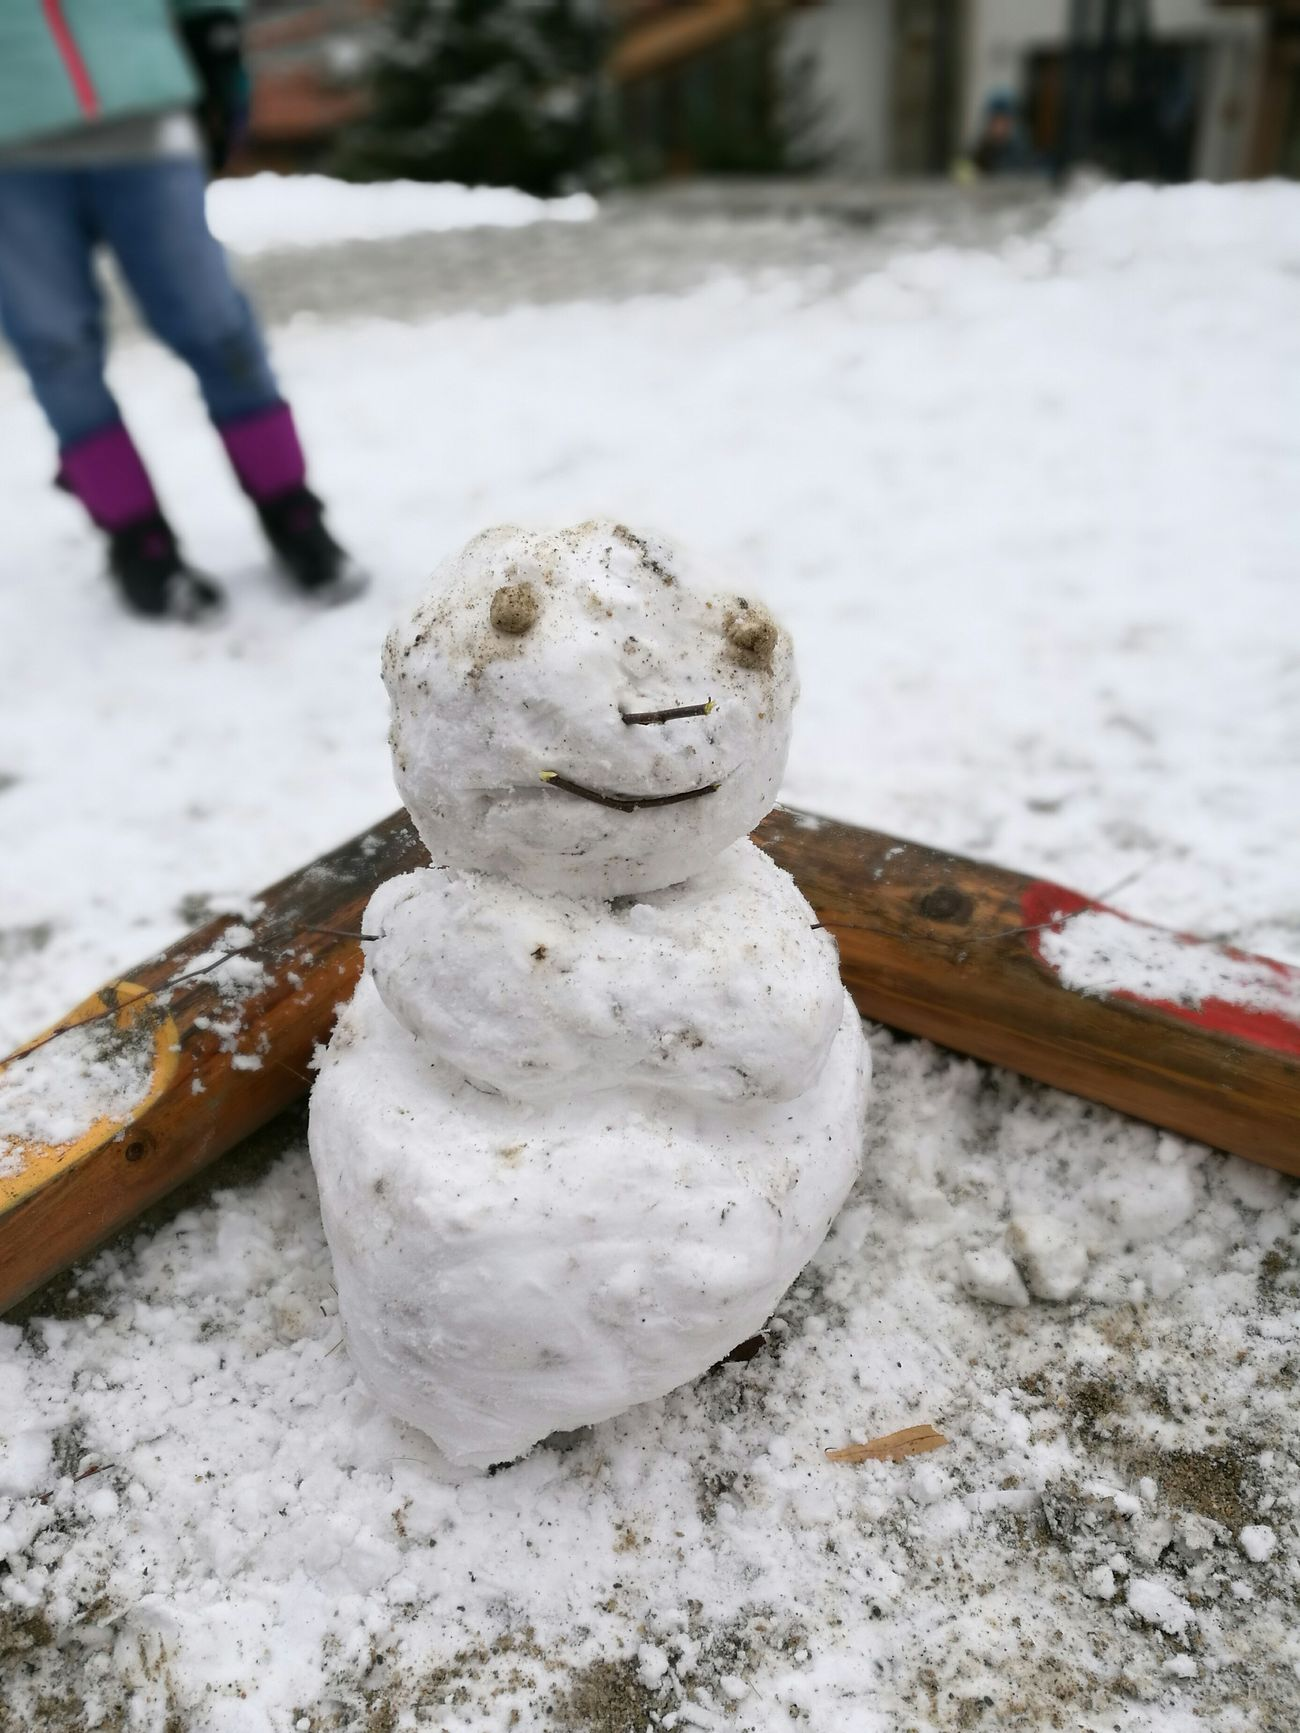 Snow ❄ Snowman⛄ Outdoors Cold Temperature Winter Snow Day Close-up Nature Funny Faces Funny